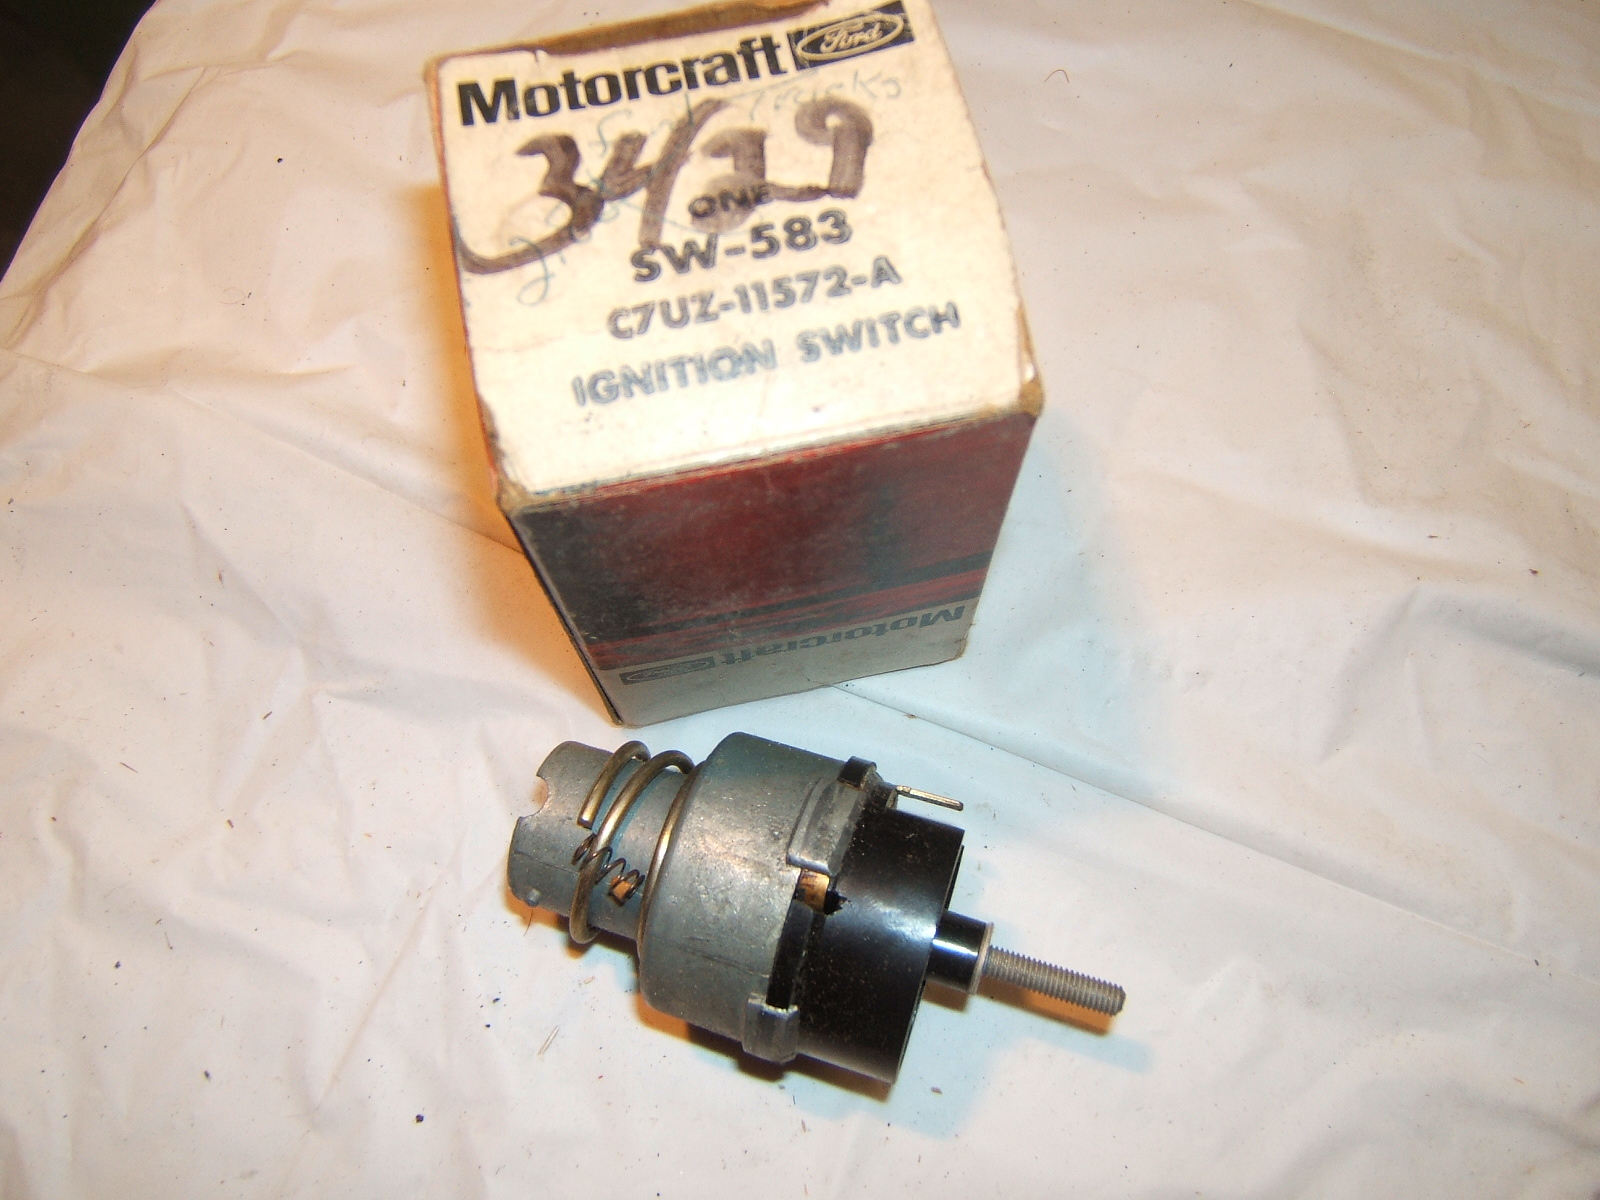 1960 -66 Ford Mercury Lincoln ignition switch nos autolite ( a c7uz11572a)